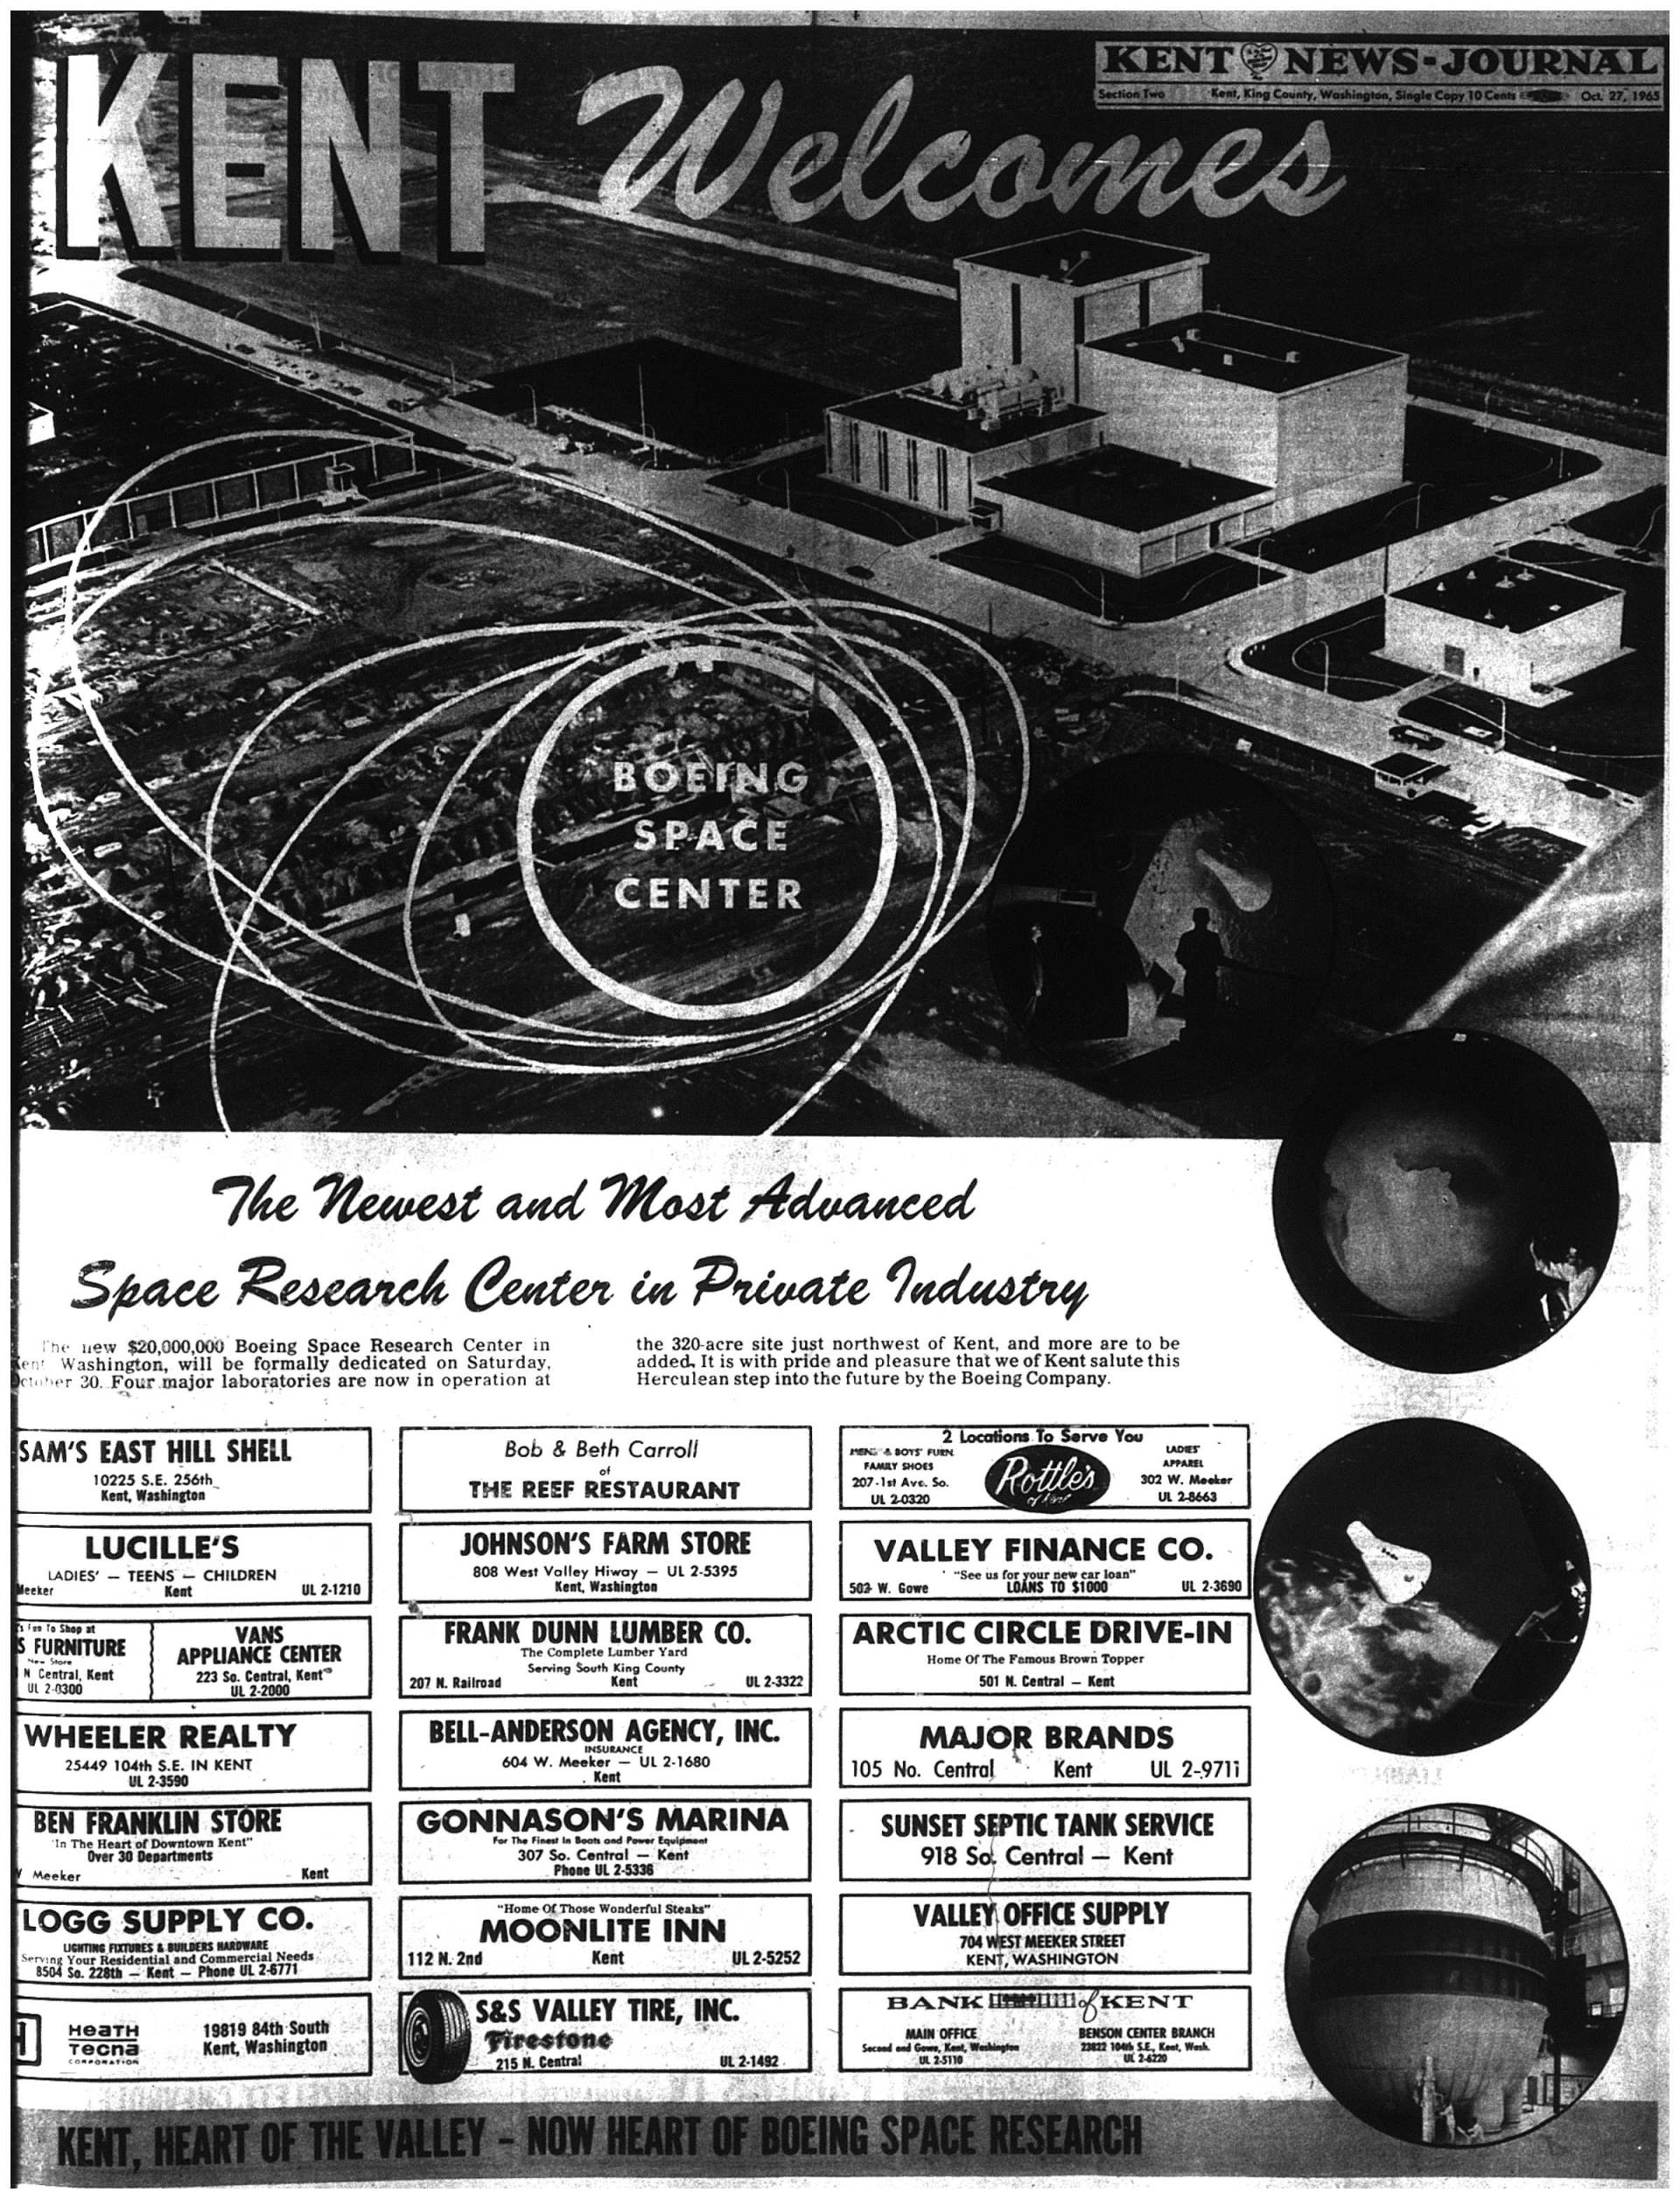 Newspaper article about the opening of Kent's Space Research Center